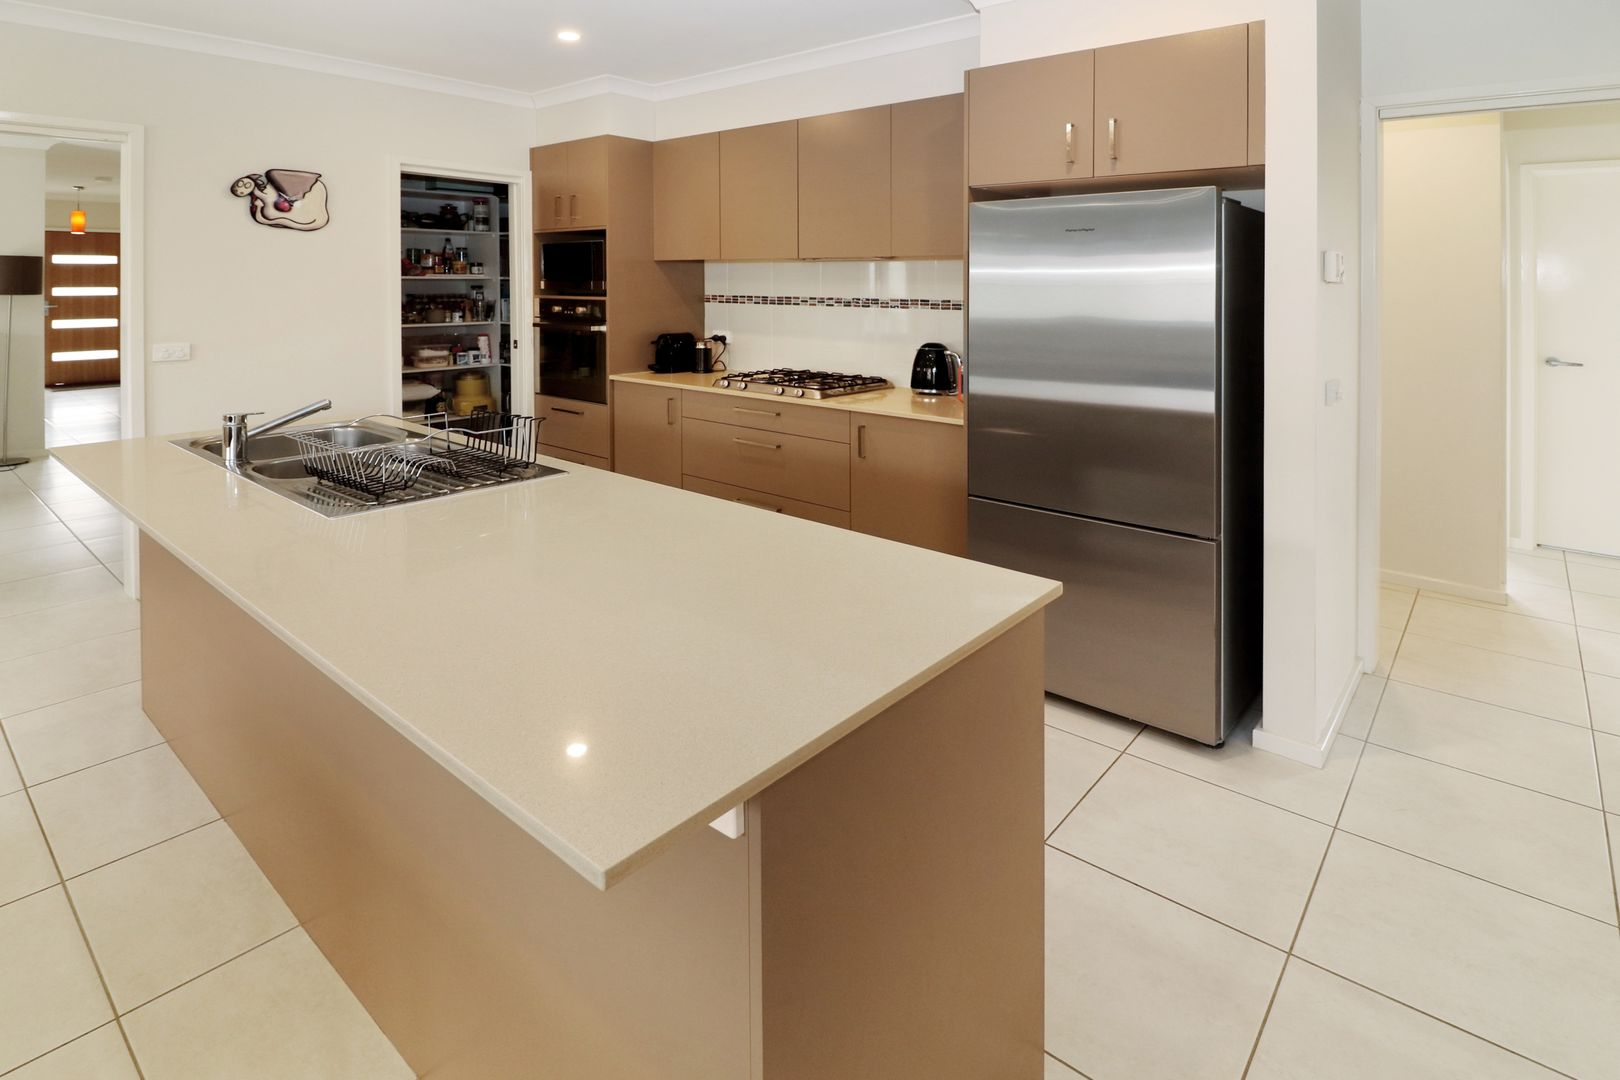 11 Hereford Street, Bungendore NSW 2621, Image 1